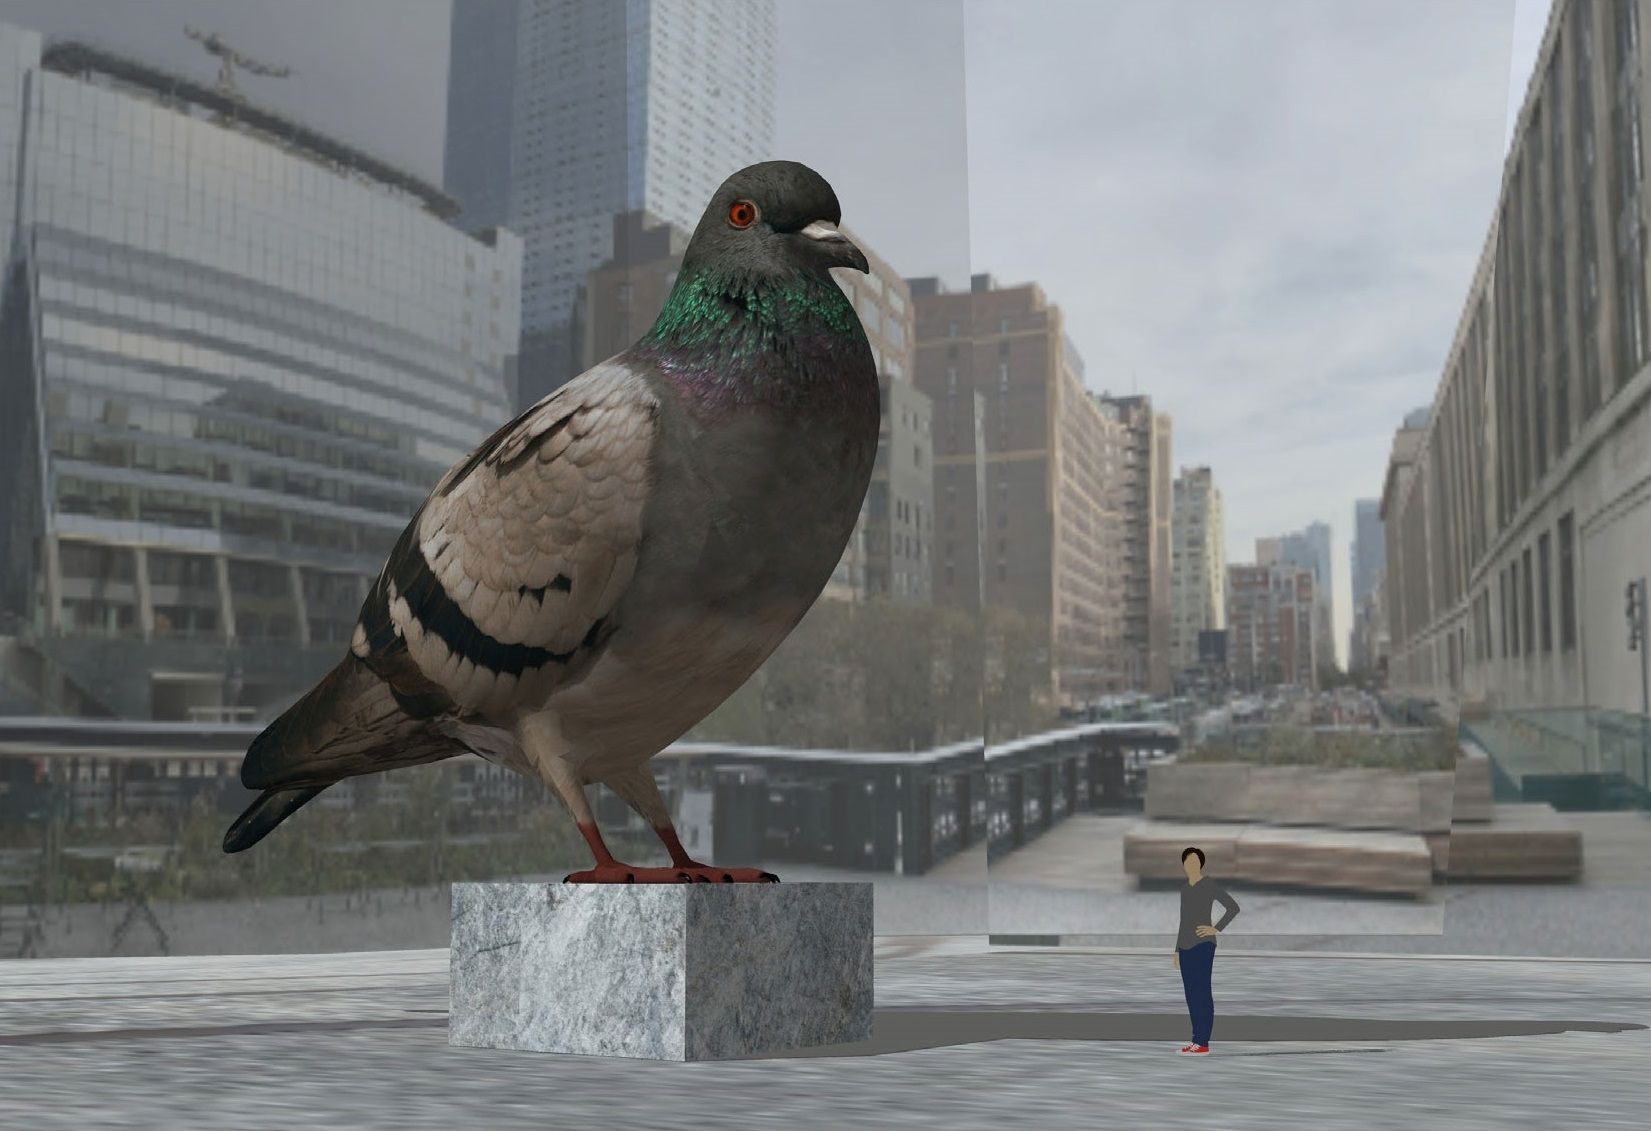 New York's High Line Will Innovate Its Future Art Installations With A Coffee Cup, Giant Pigeon, QR Code